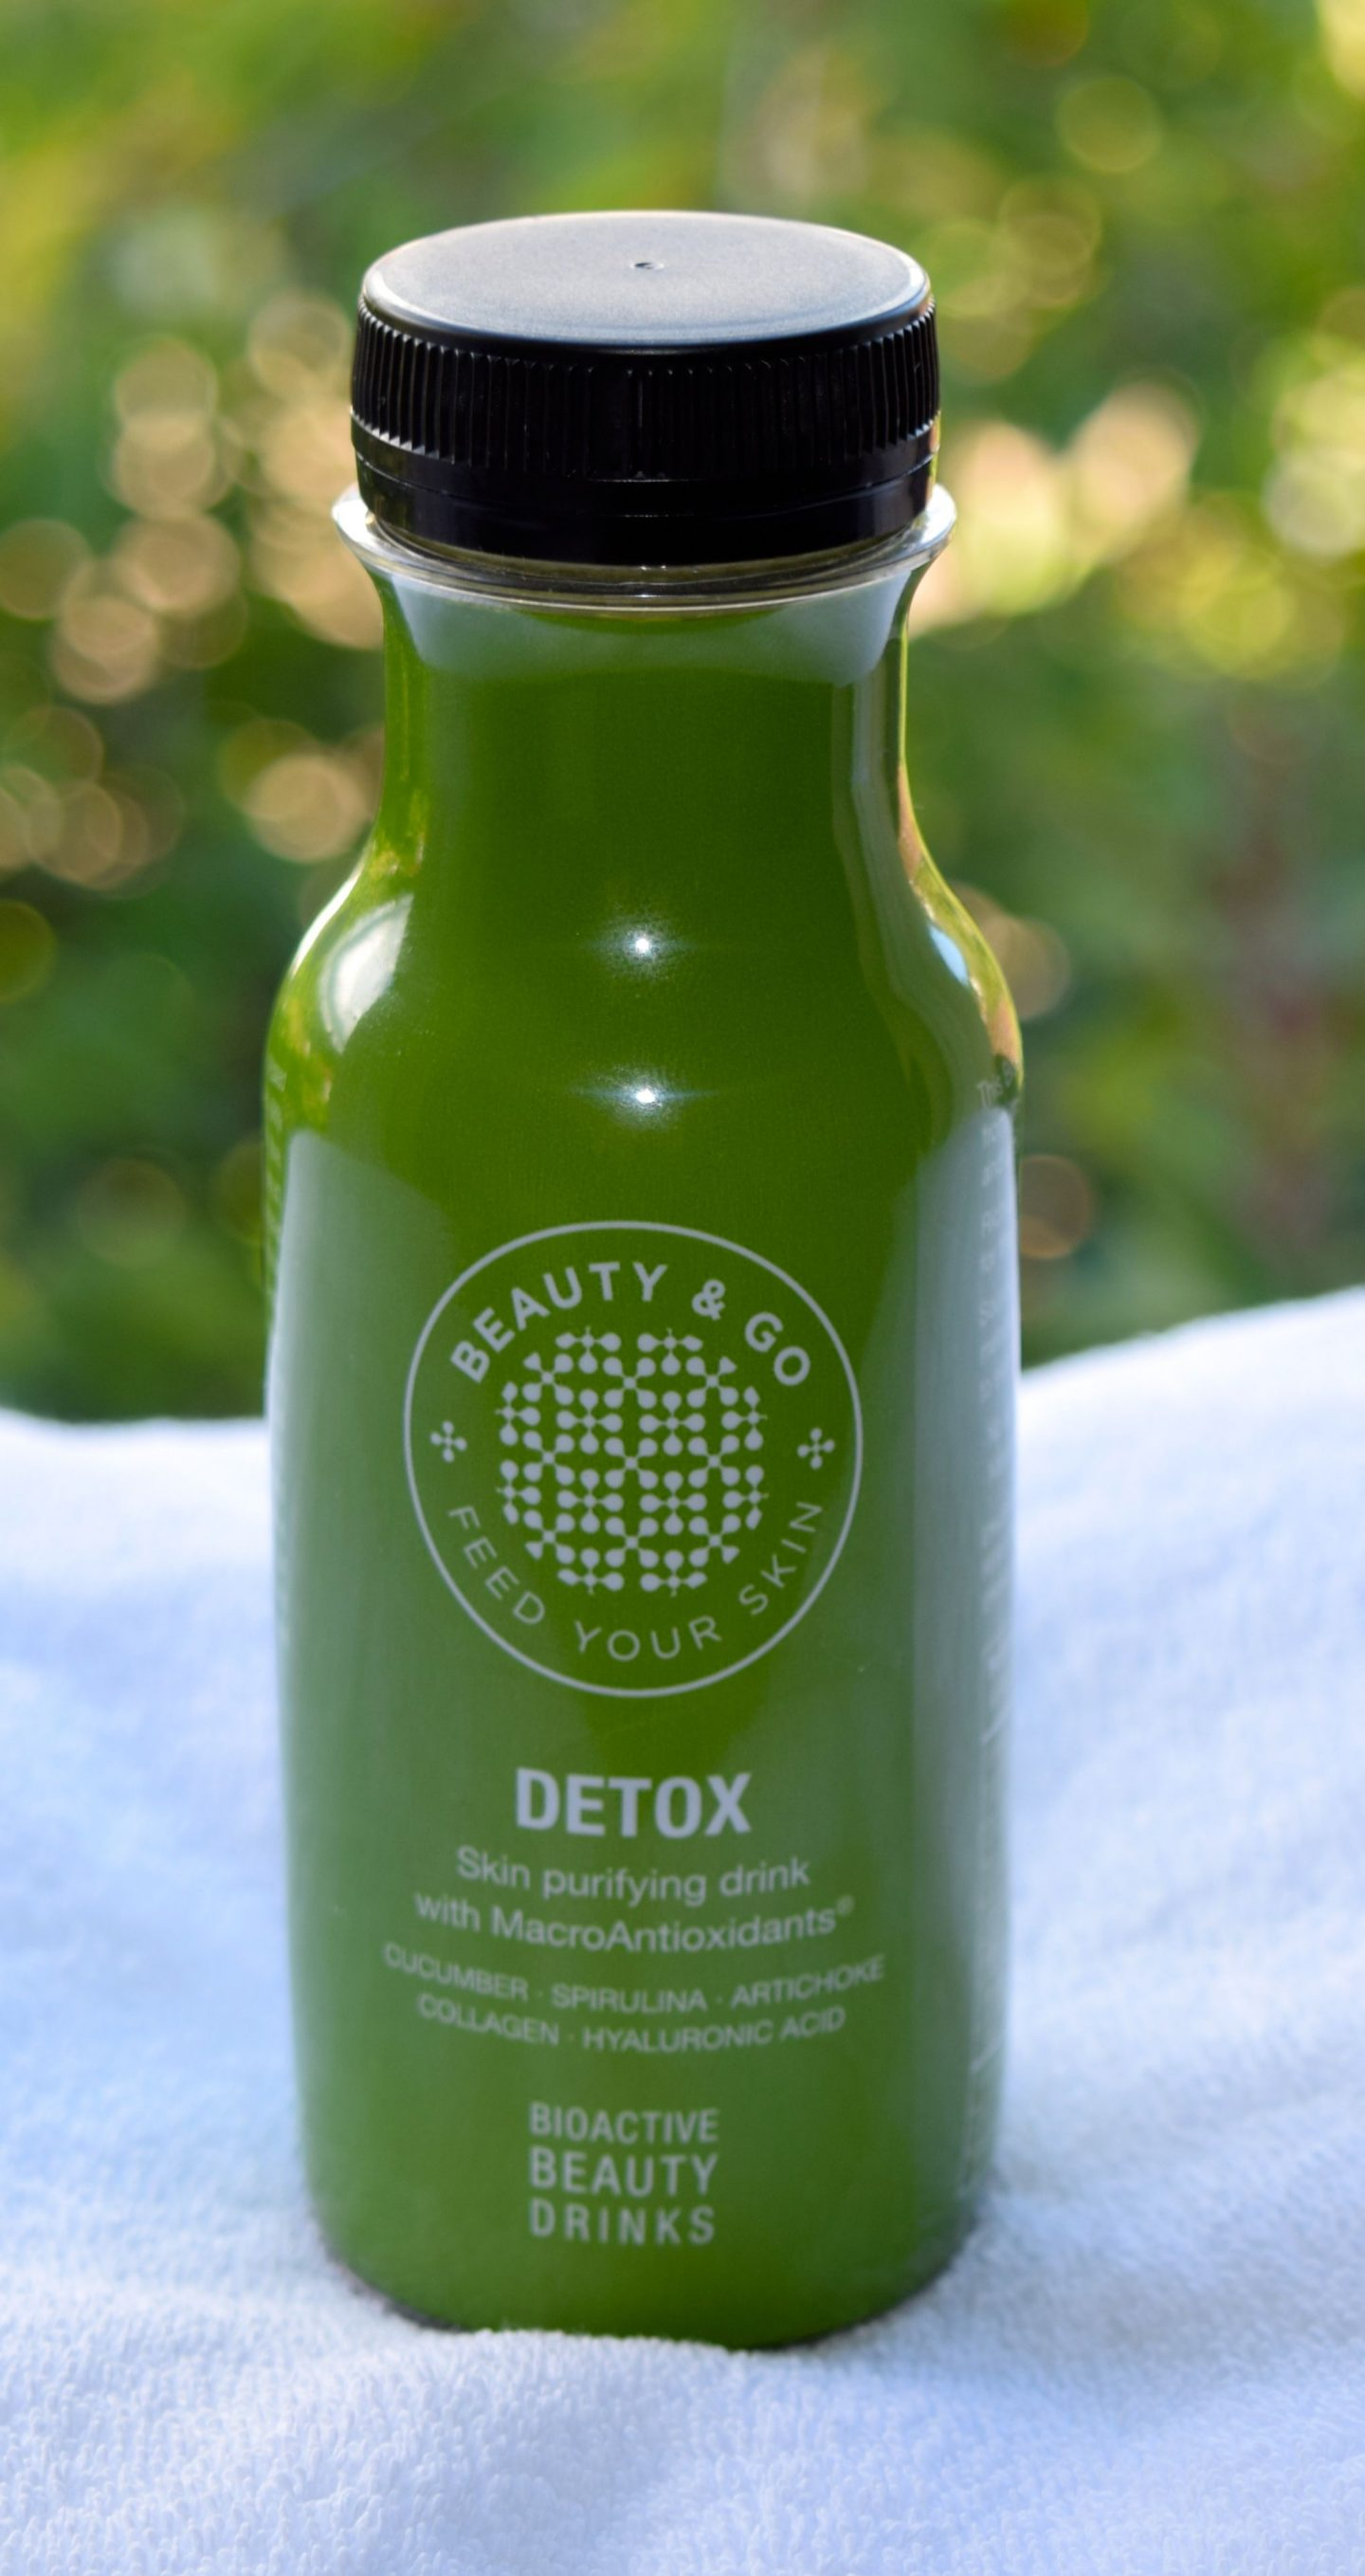 Beauty & Go Detox